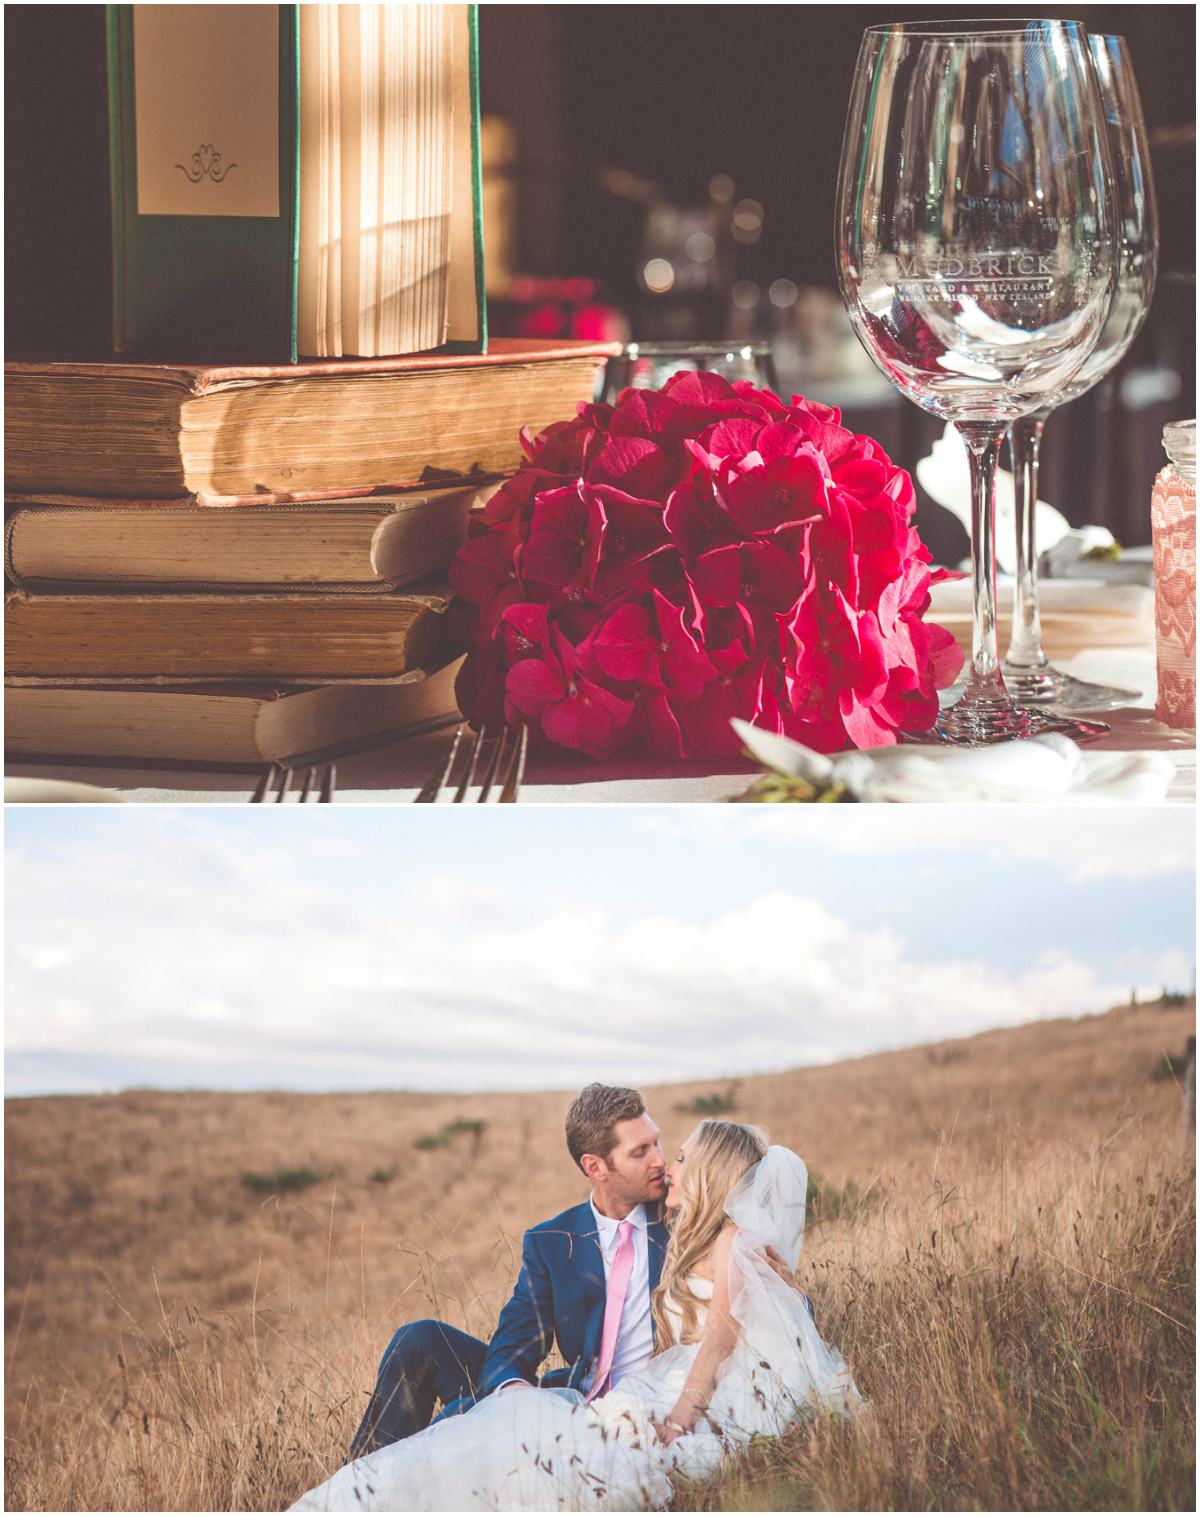 auckland wedding photographer_051